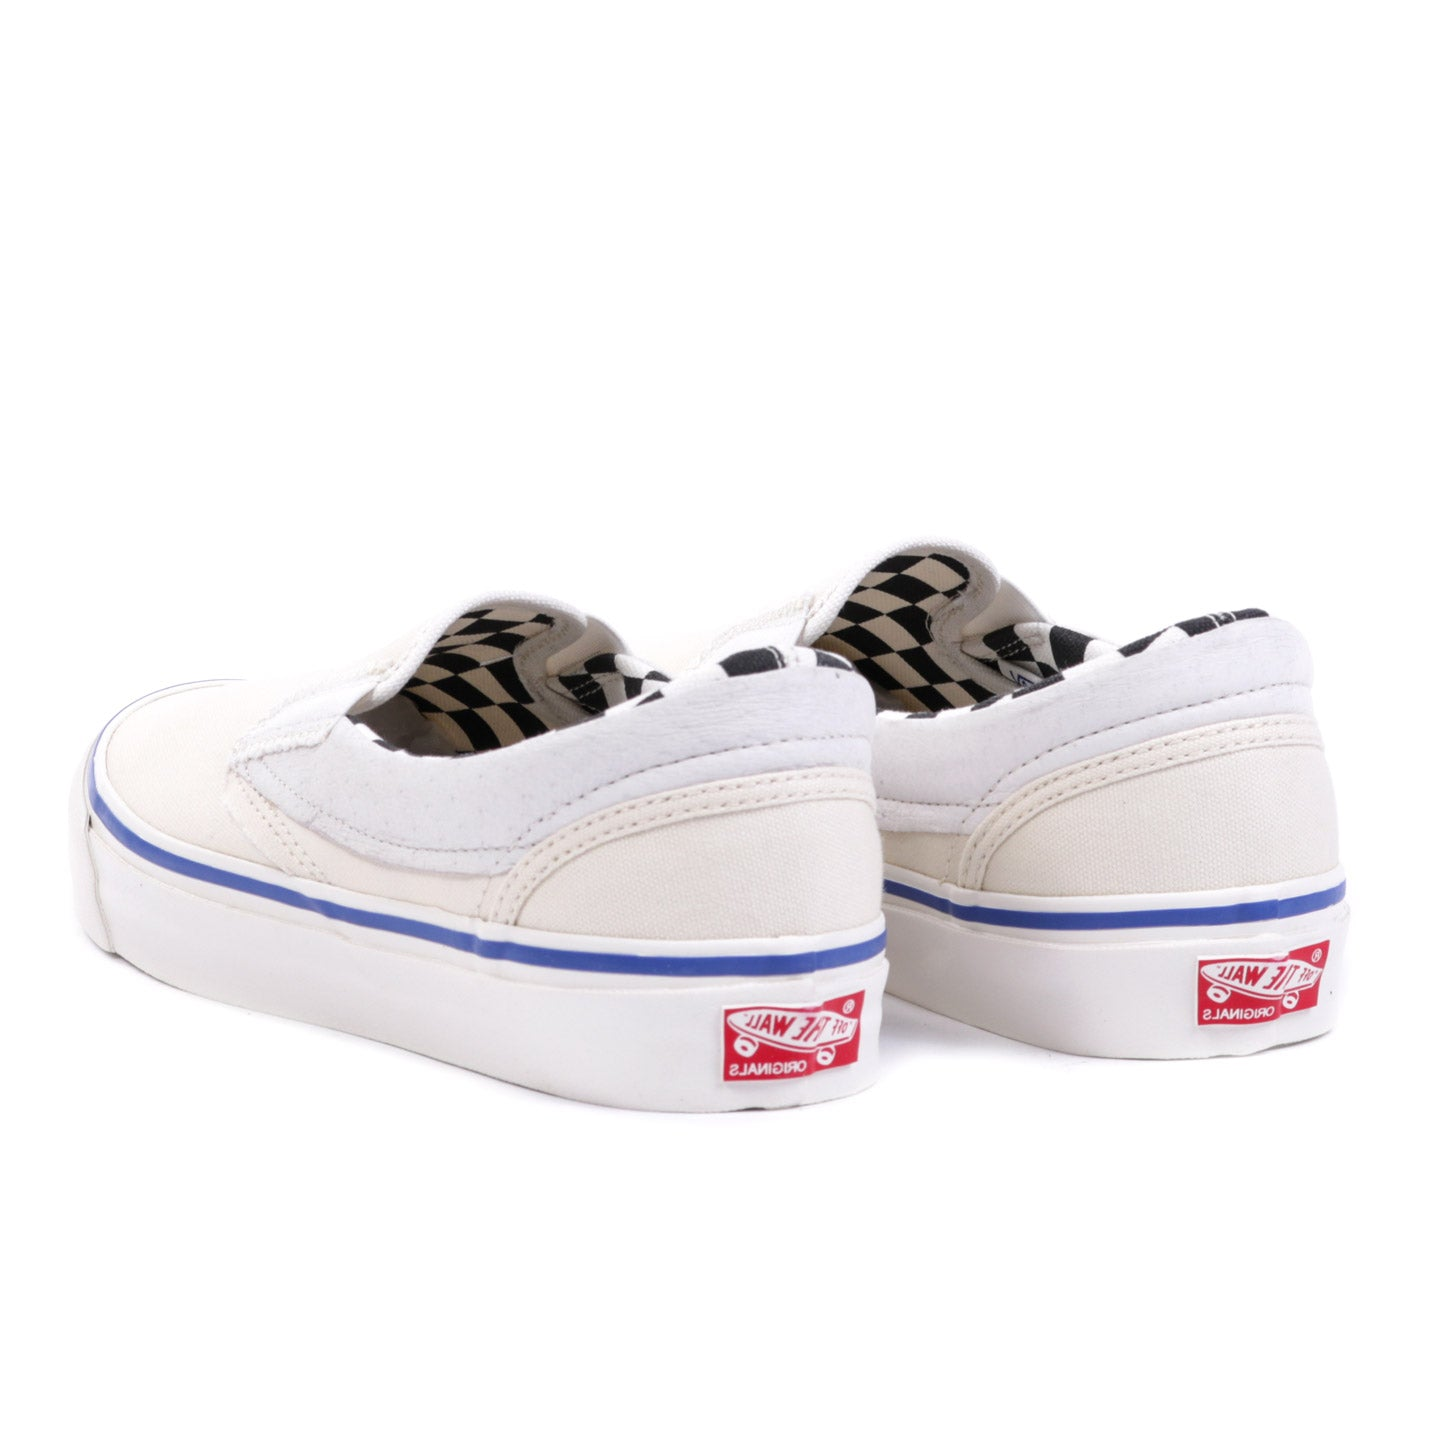 VAULT BY VANS OG CLASSIC SLIP-ON INSIDE OUT CHECKERBOARD